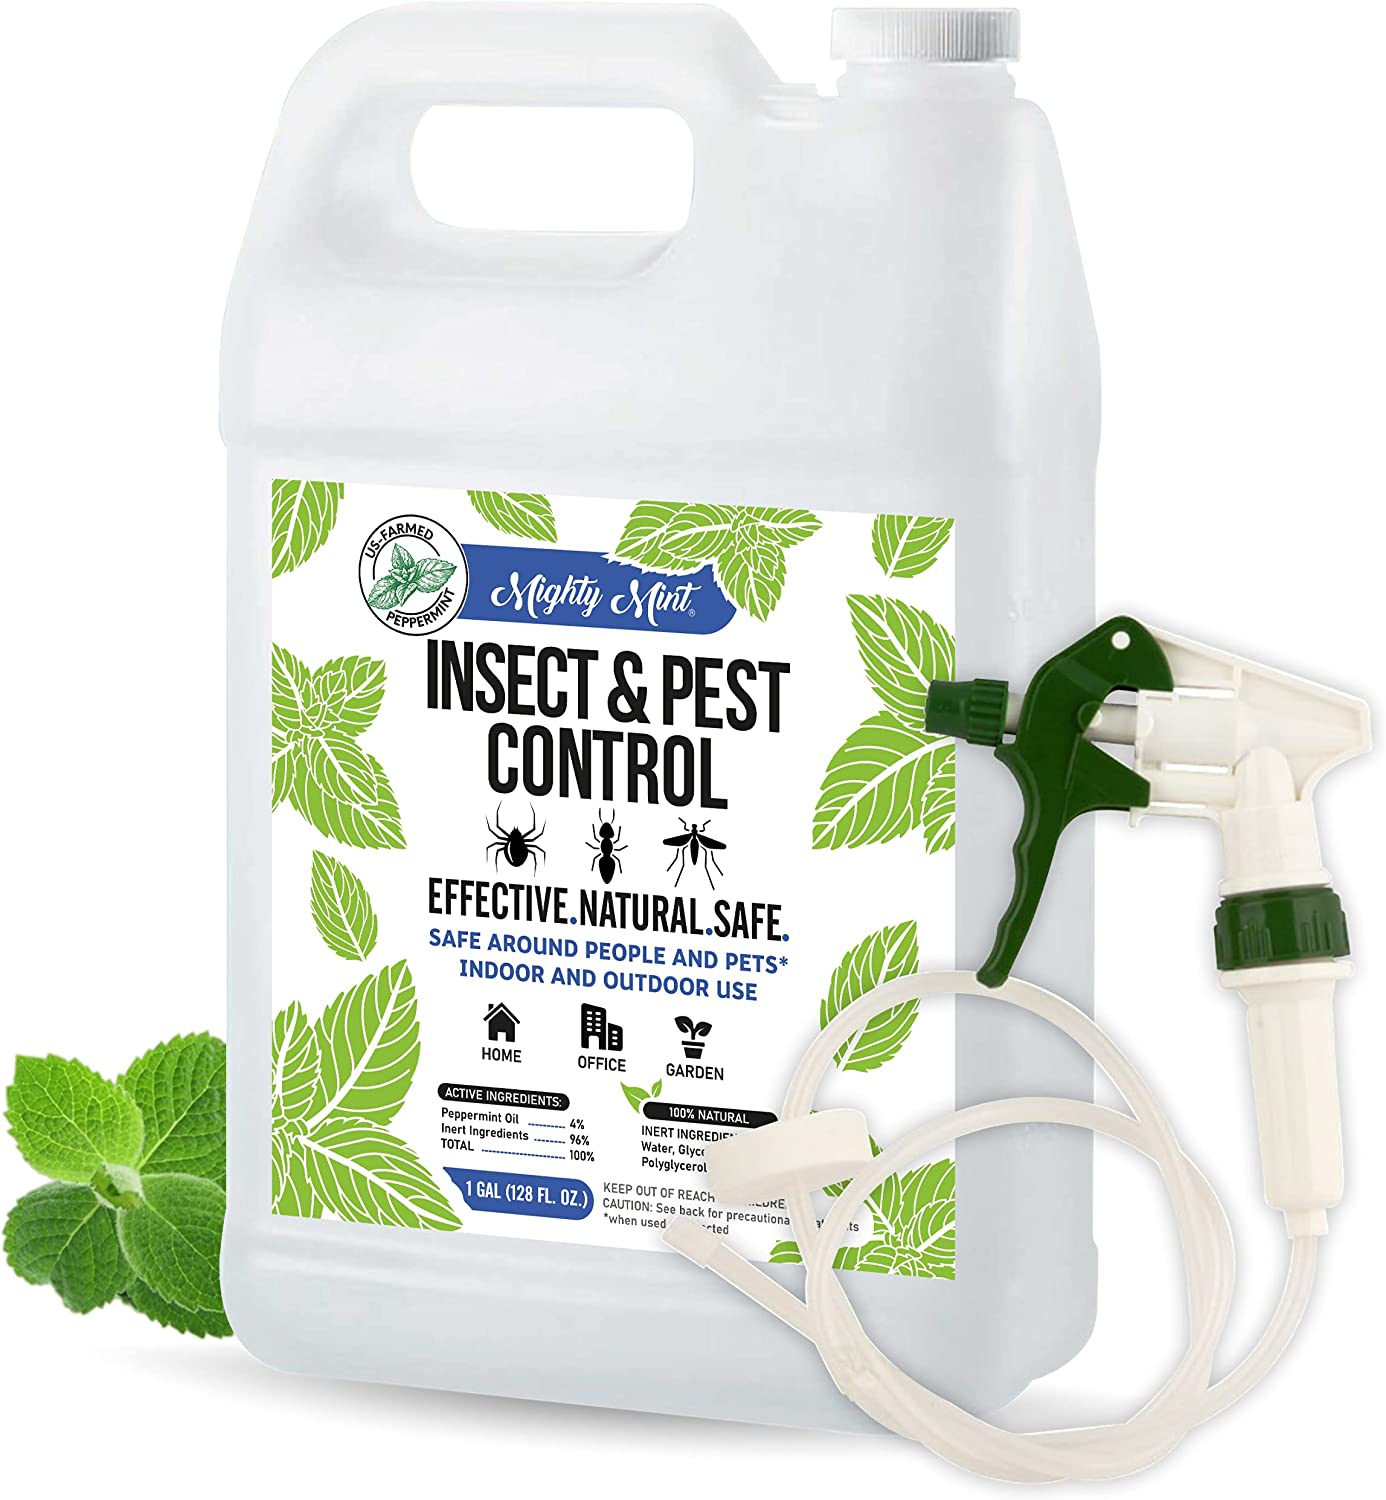 Mighty Mint Gallon (128 oz) Insect and Pest Control Peppermint Oil - Natural Spray for Spiders, Ants, and More - Non Toxic